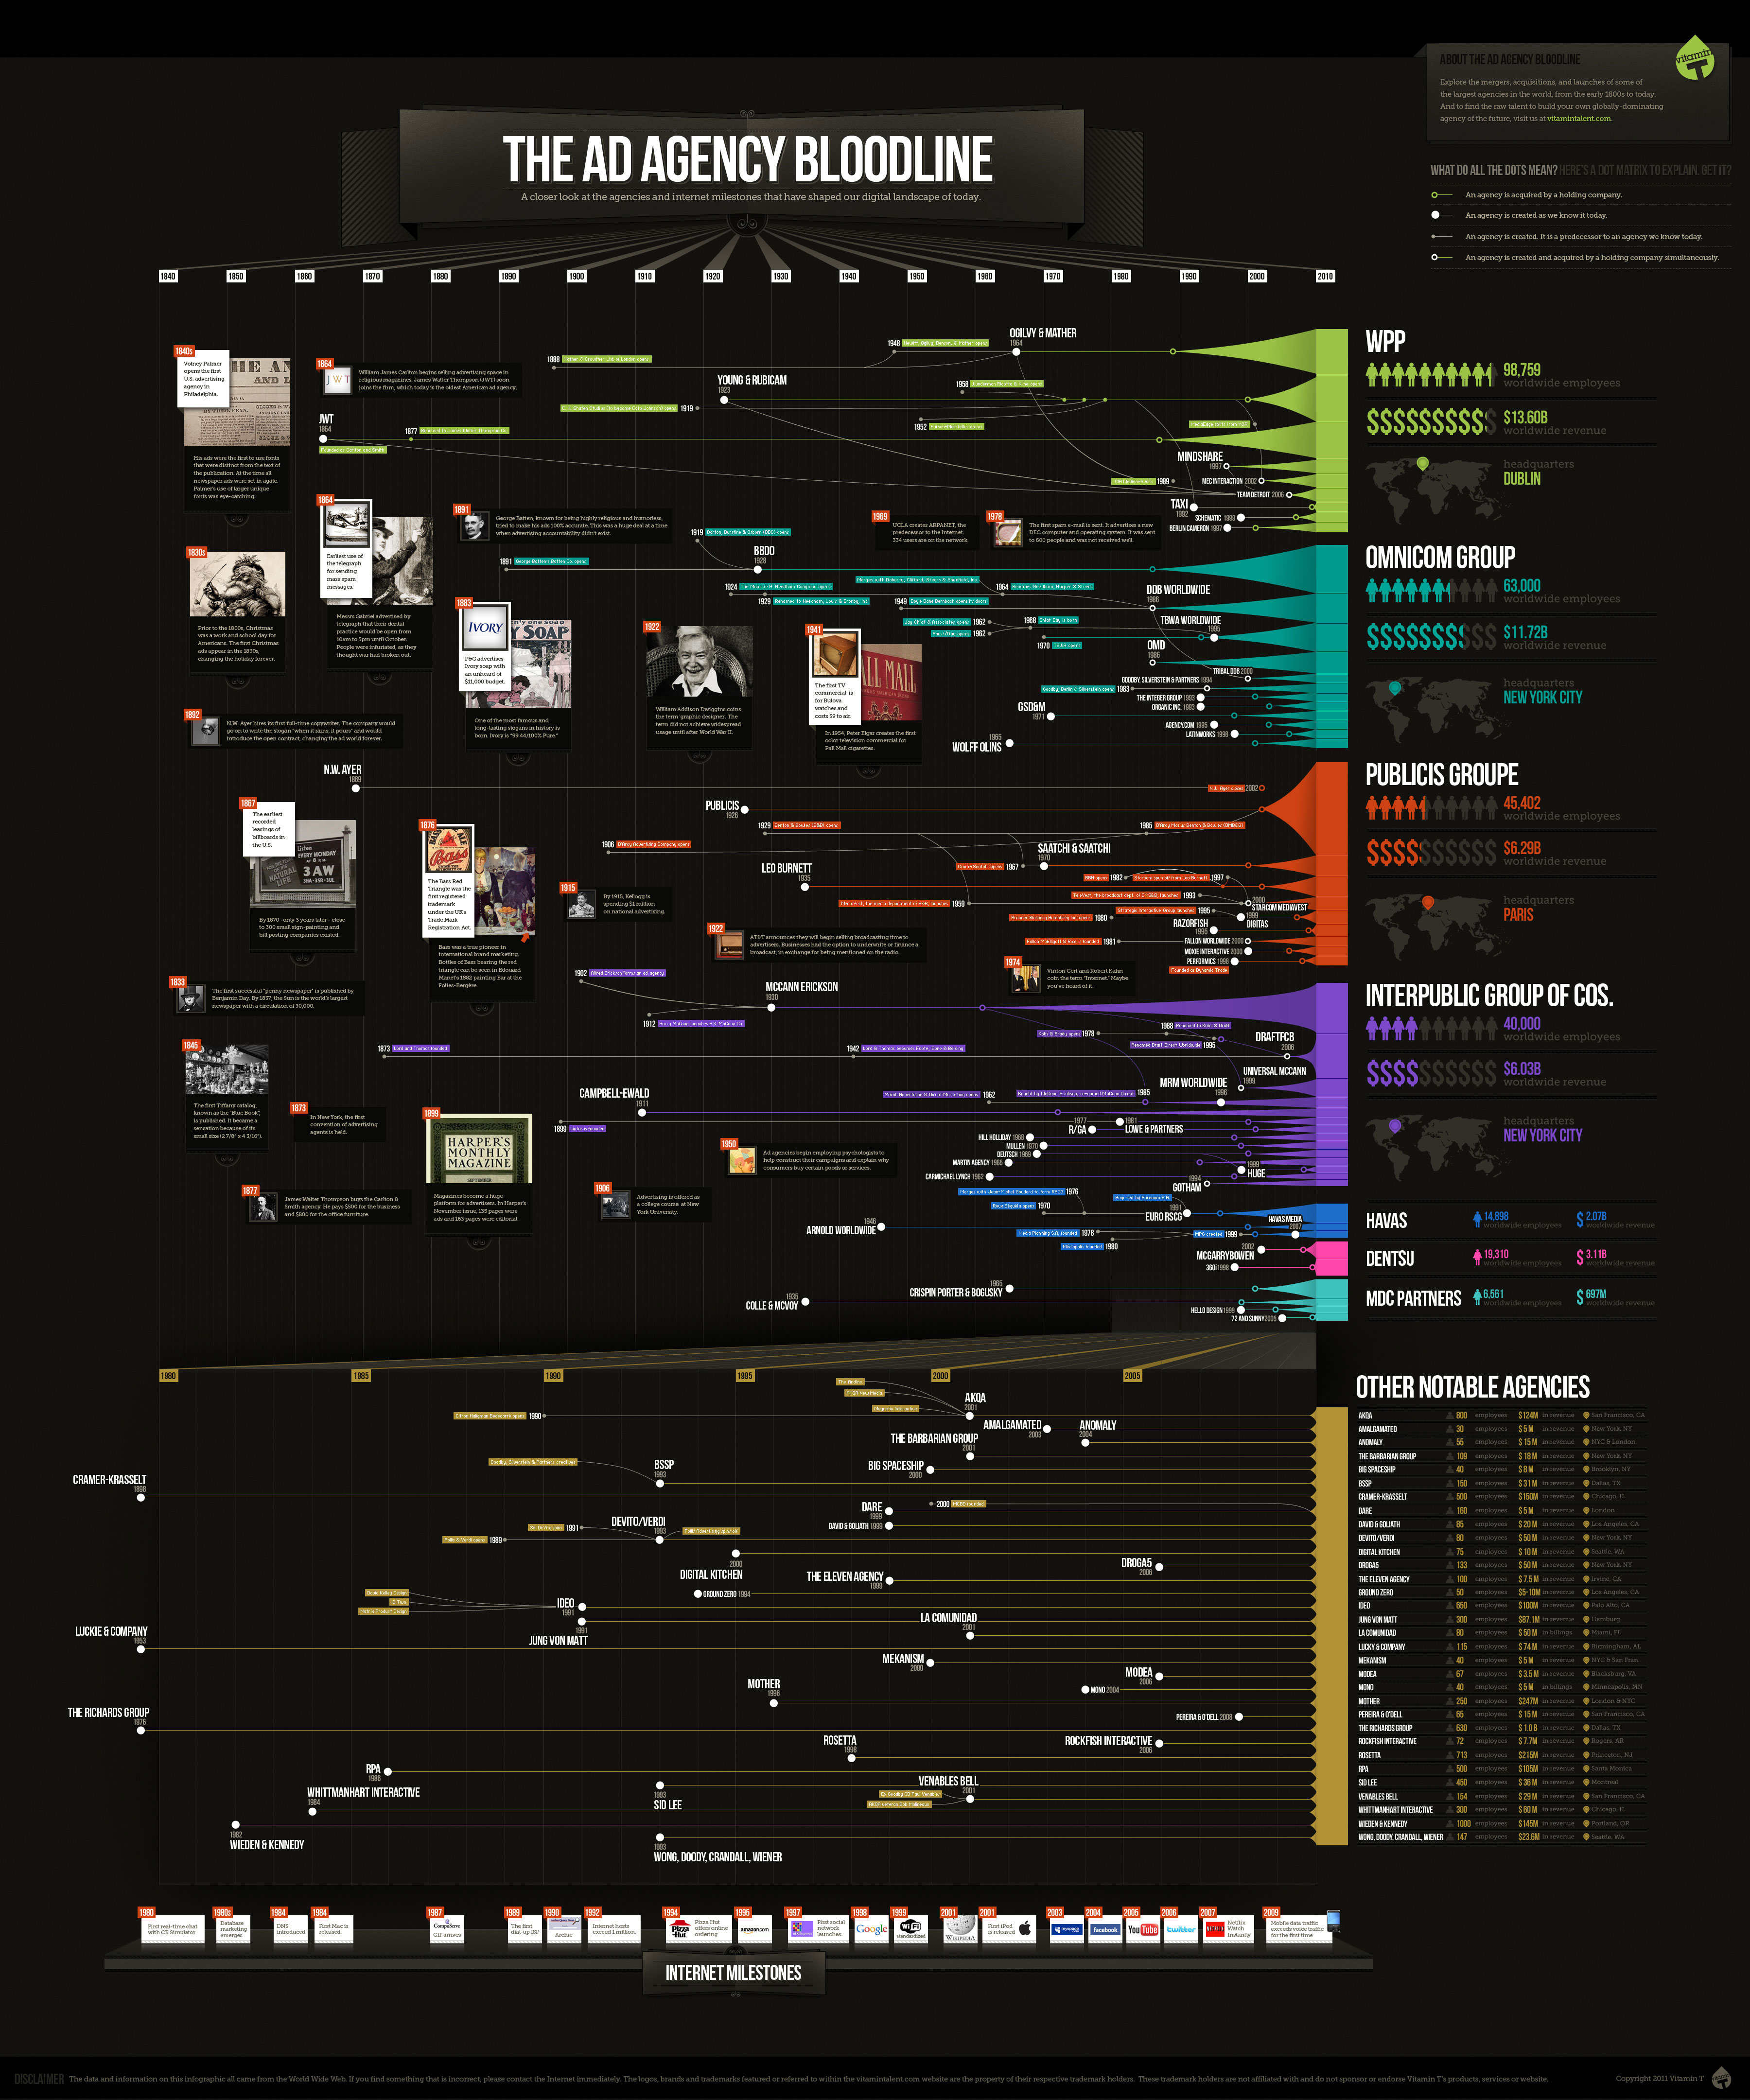 The-Ad-Agency-Bloodline-infographic